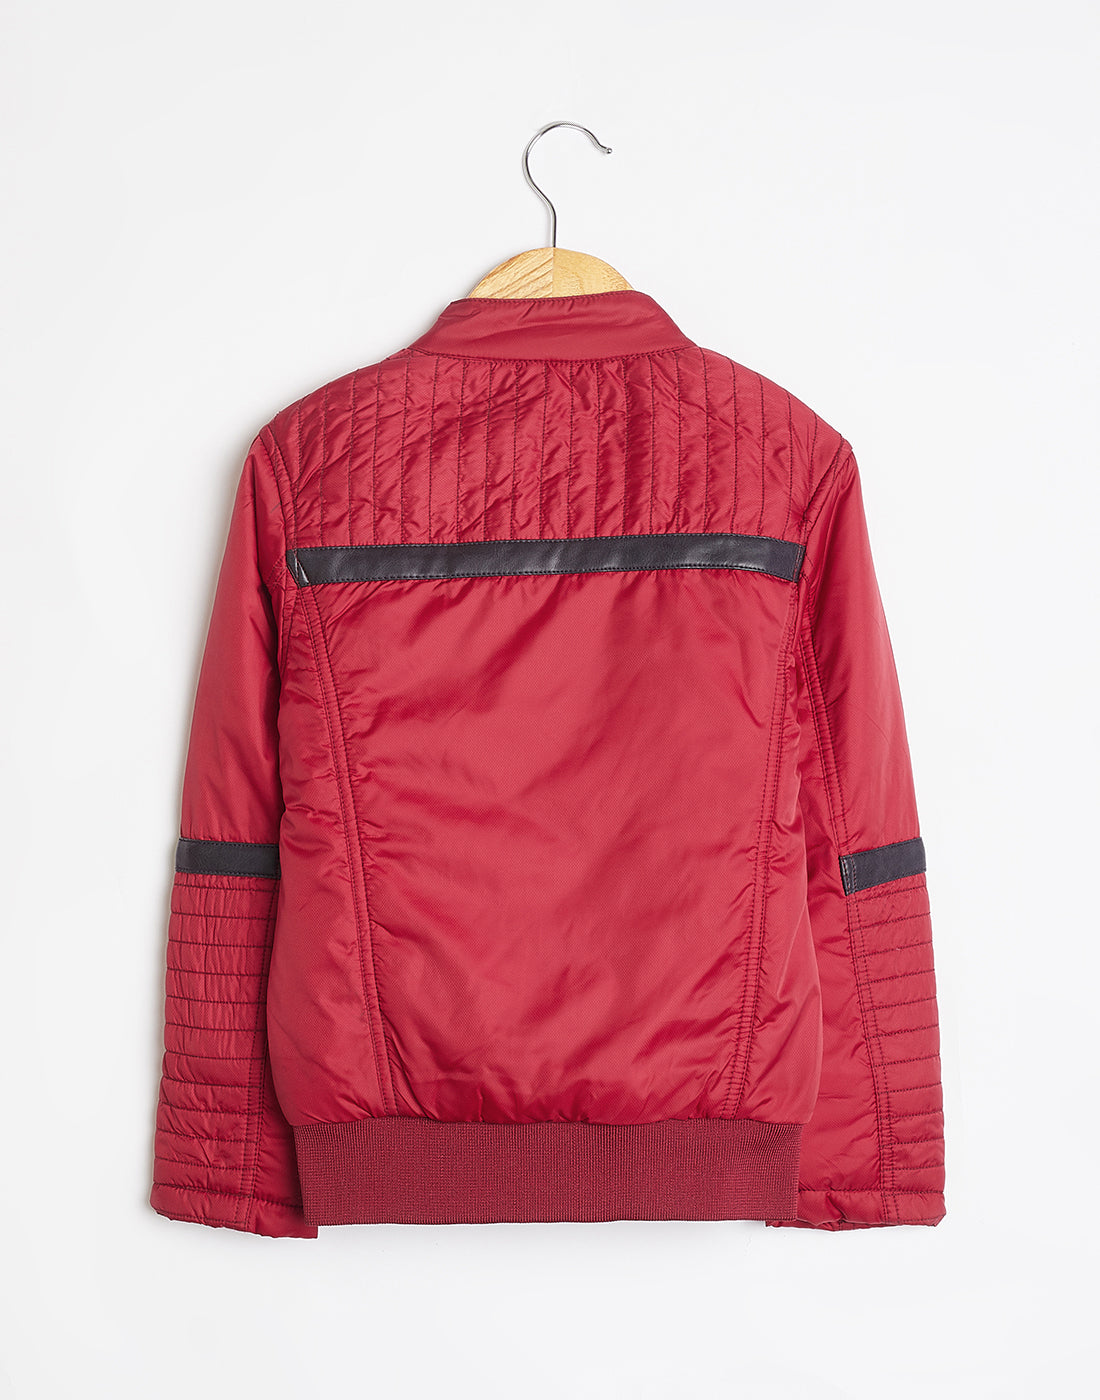 Octave Boys Red Biker Jacket